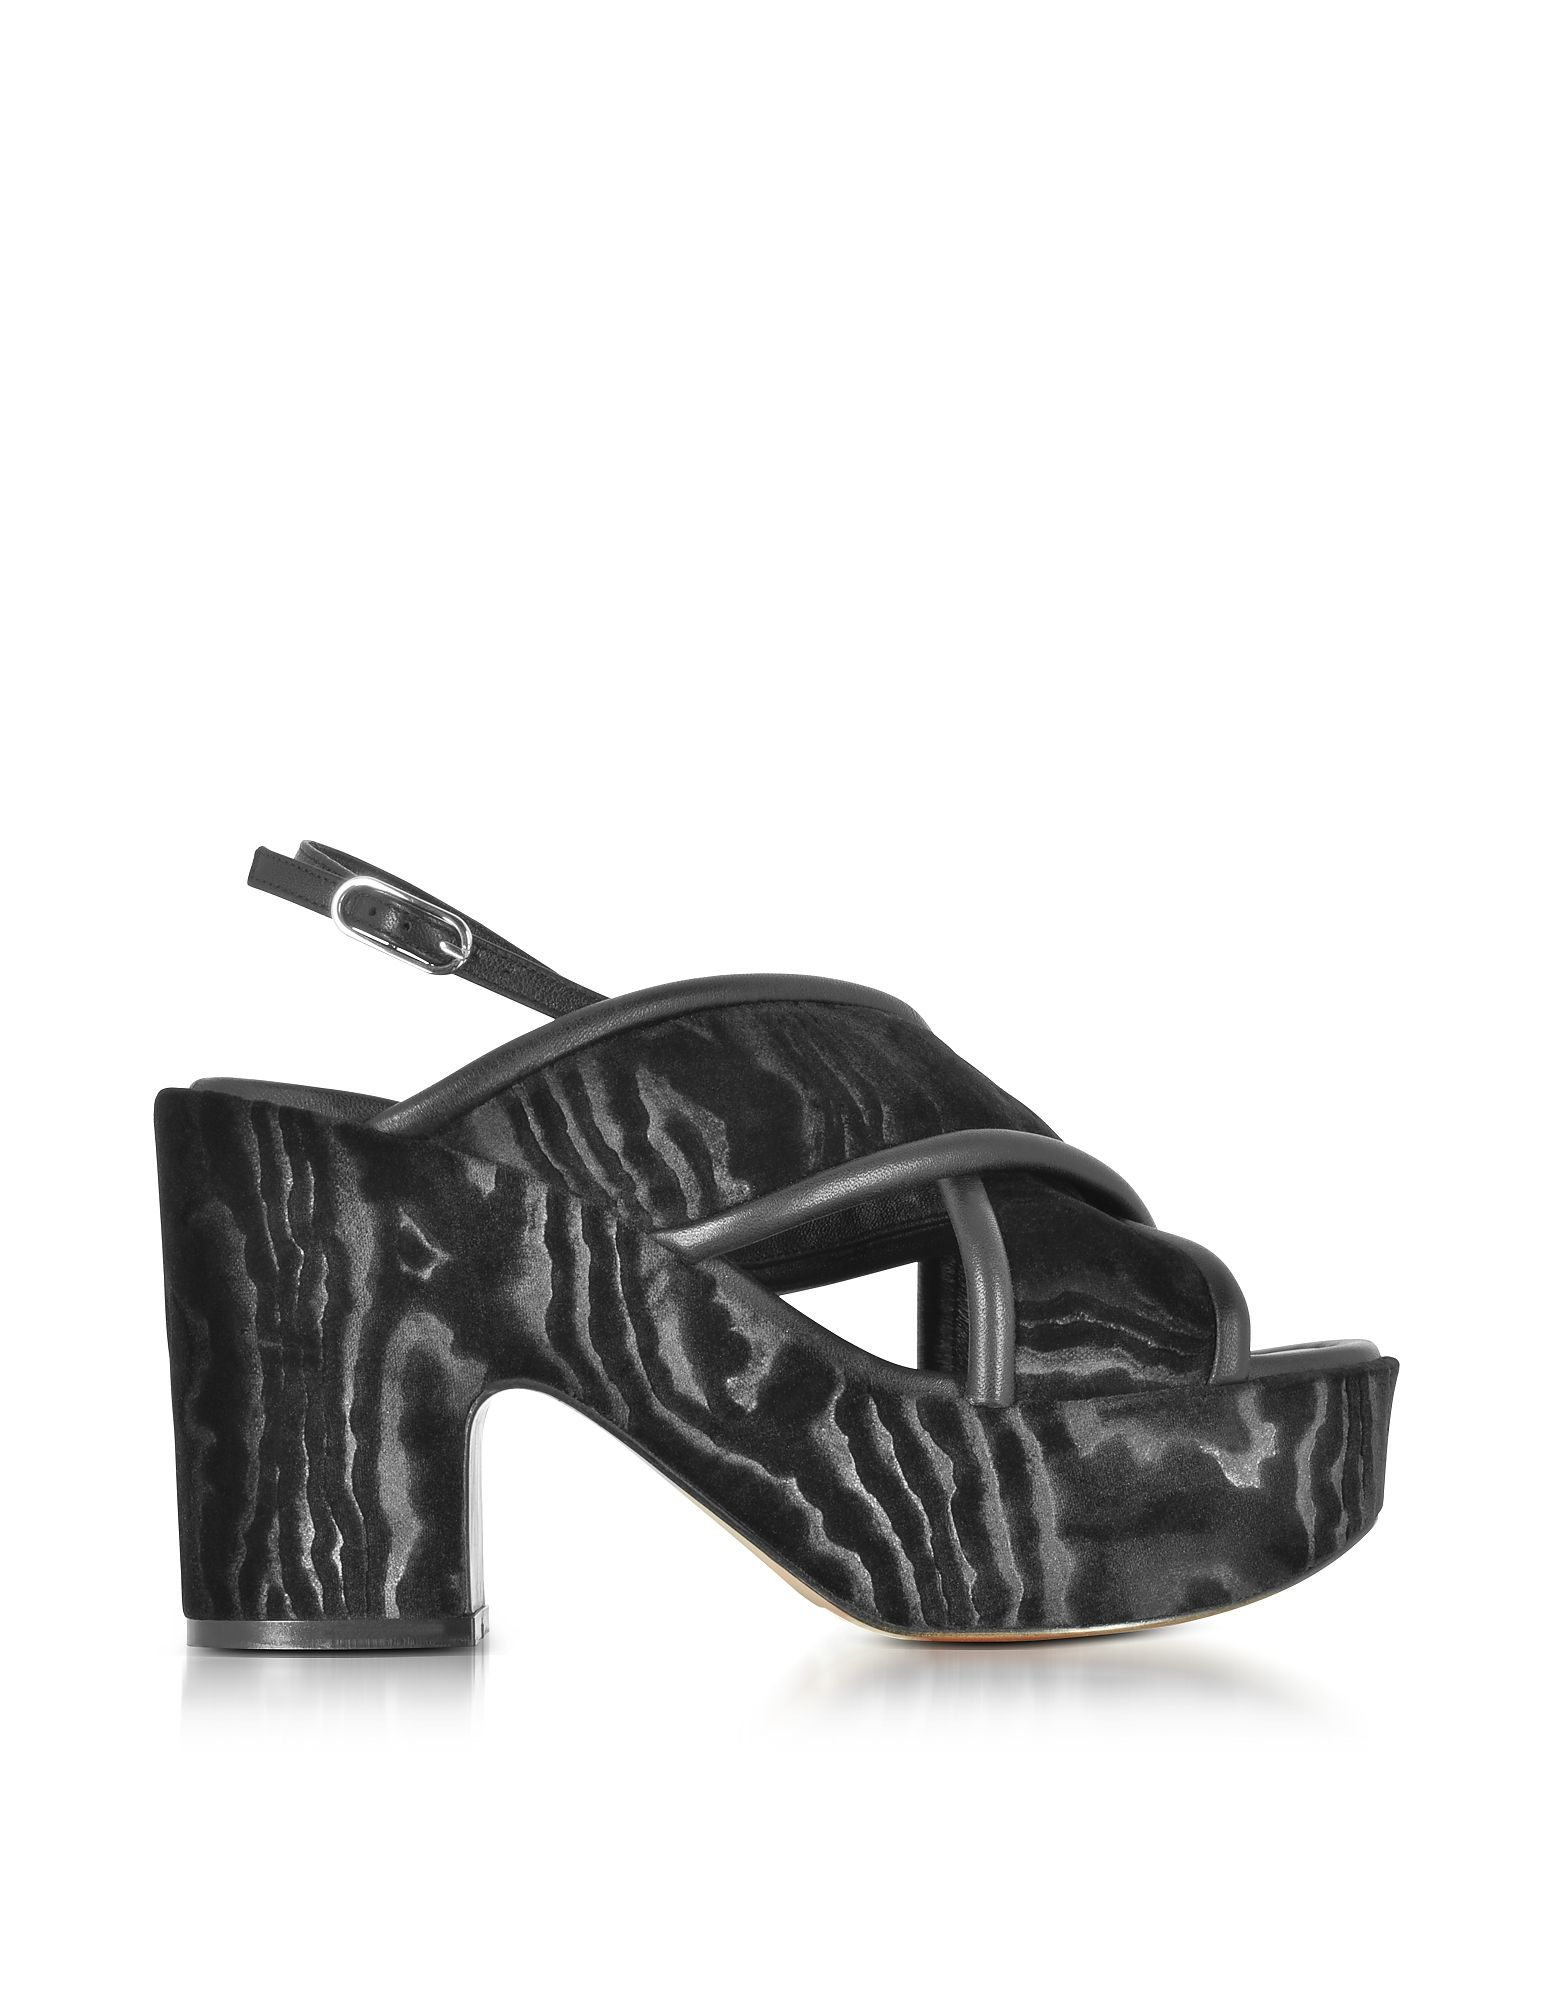 12f93dc0d ROBERT CLERGERIE ROBERT CLERGERIE WOMEN S BLACK VELVET SANDALS.   robertclergerie  shoes